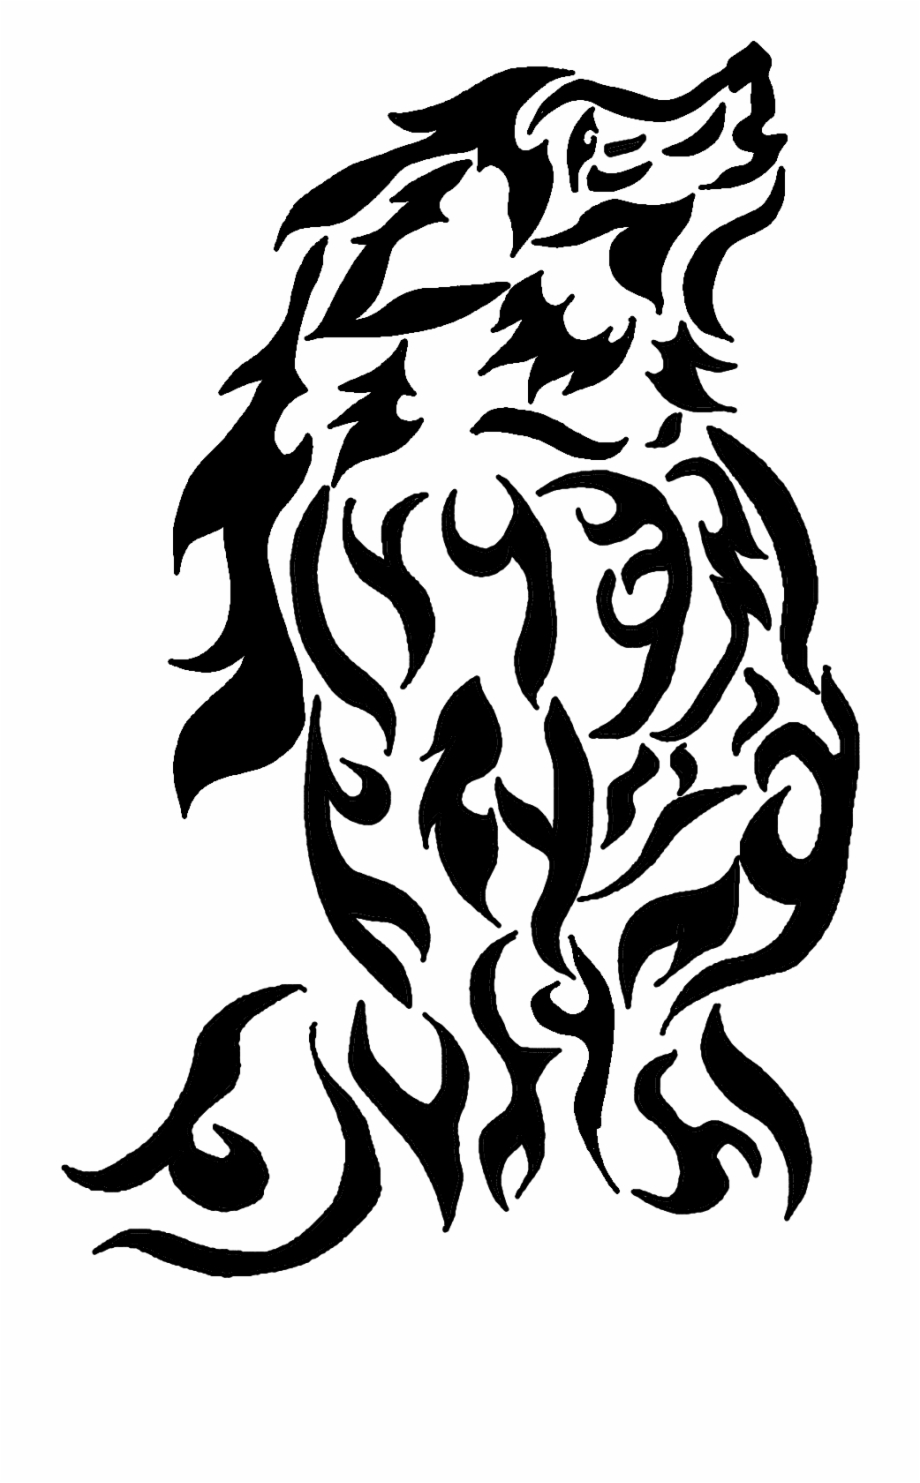 Anthro Wolf Howling Tribal By Ceeme521 Anthro Wolf - Tribal ... vector black and white download